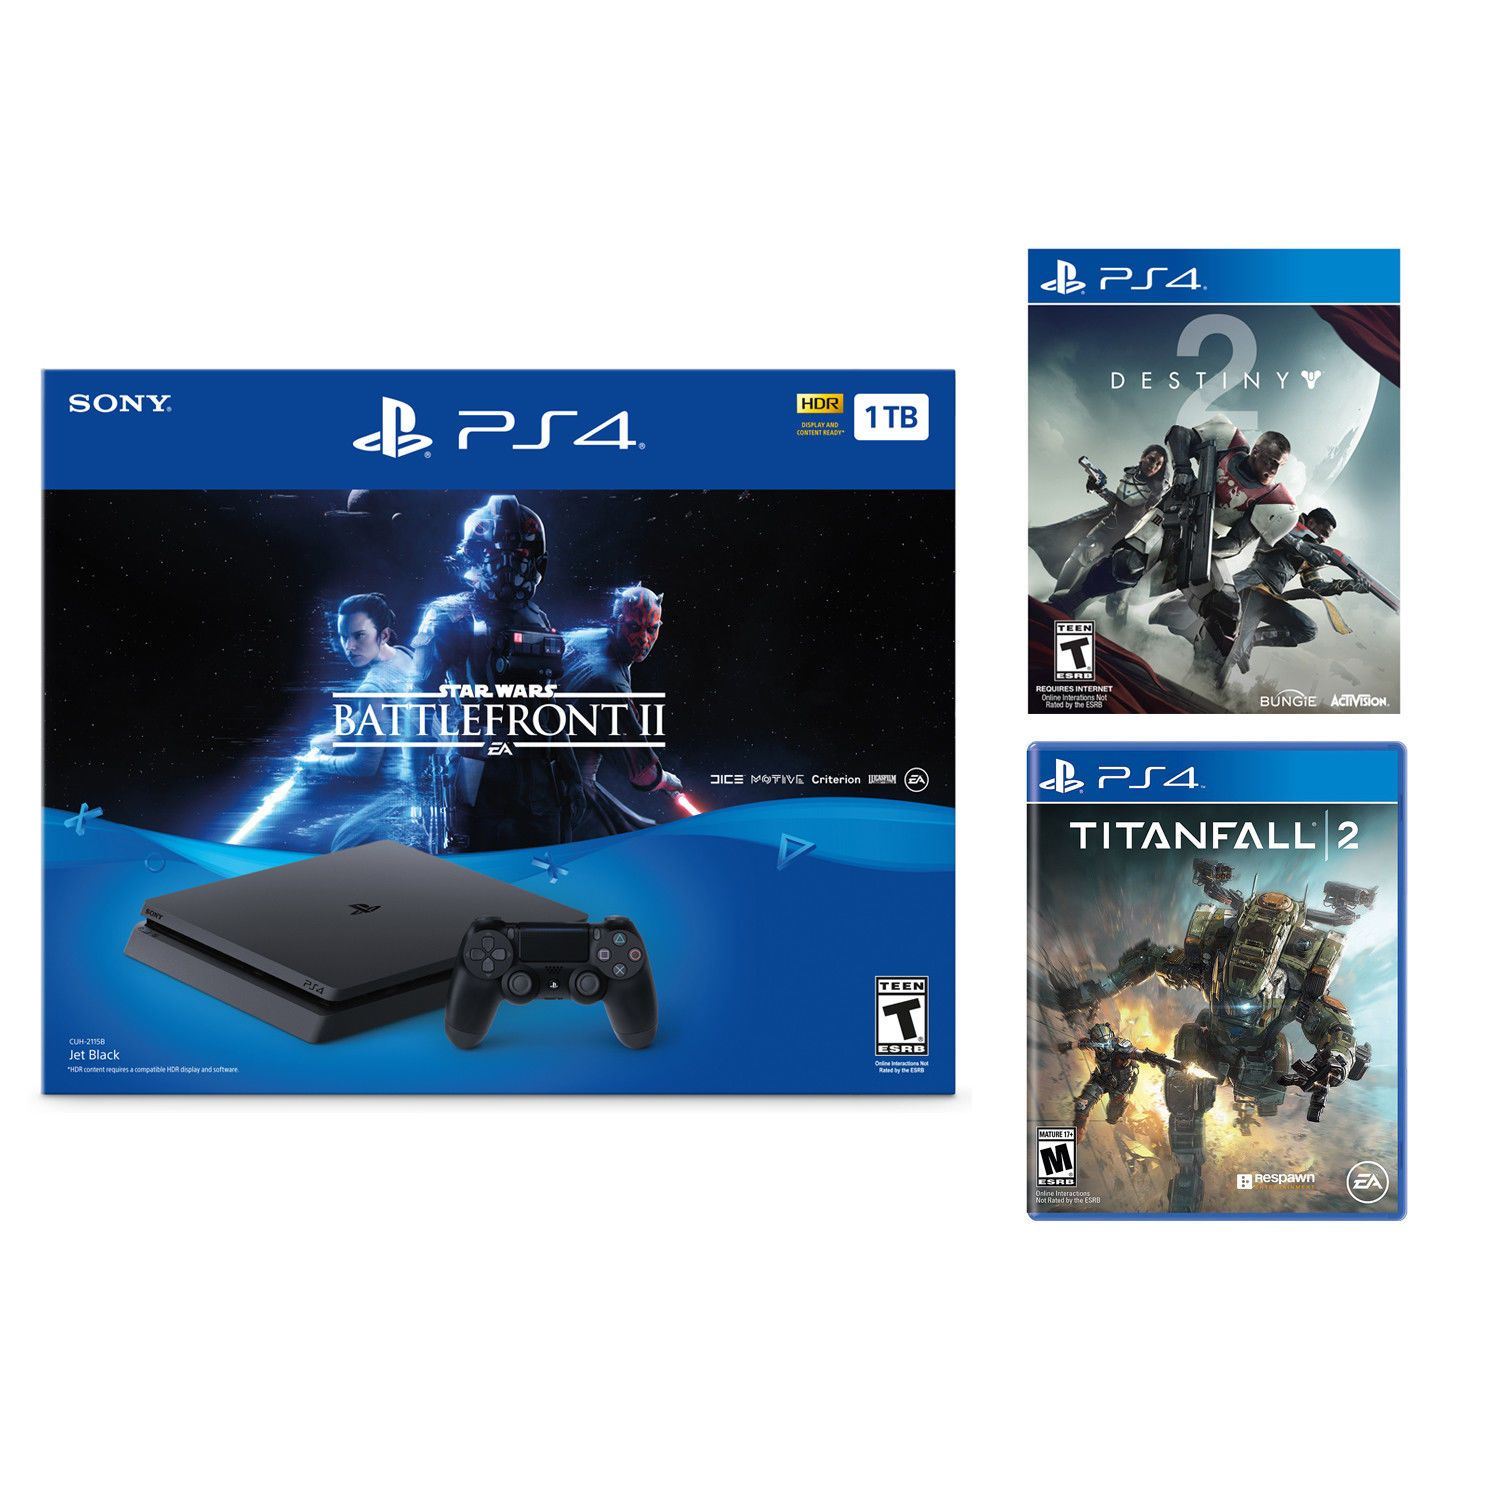 Playstation 4 Pro 1tb Hdd Jet Black In 2020 Playstation 4 Gaming Console Playstation